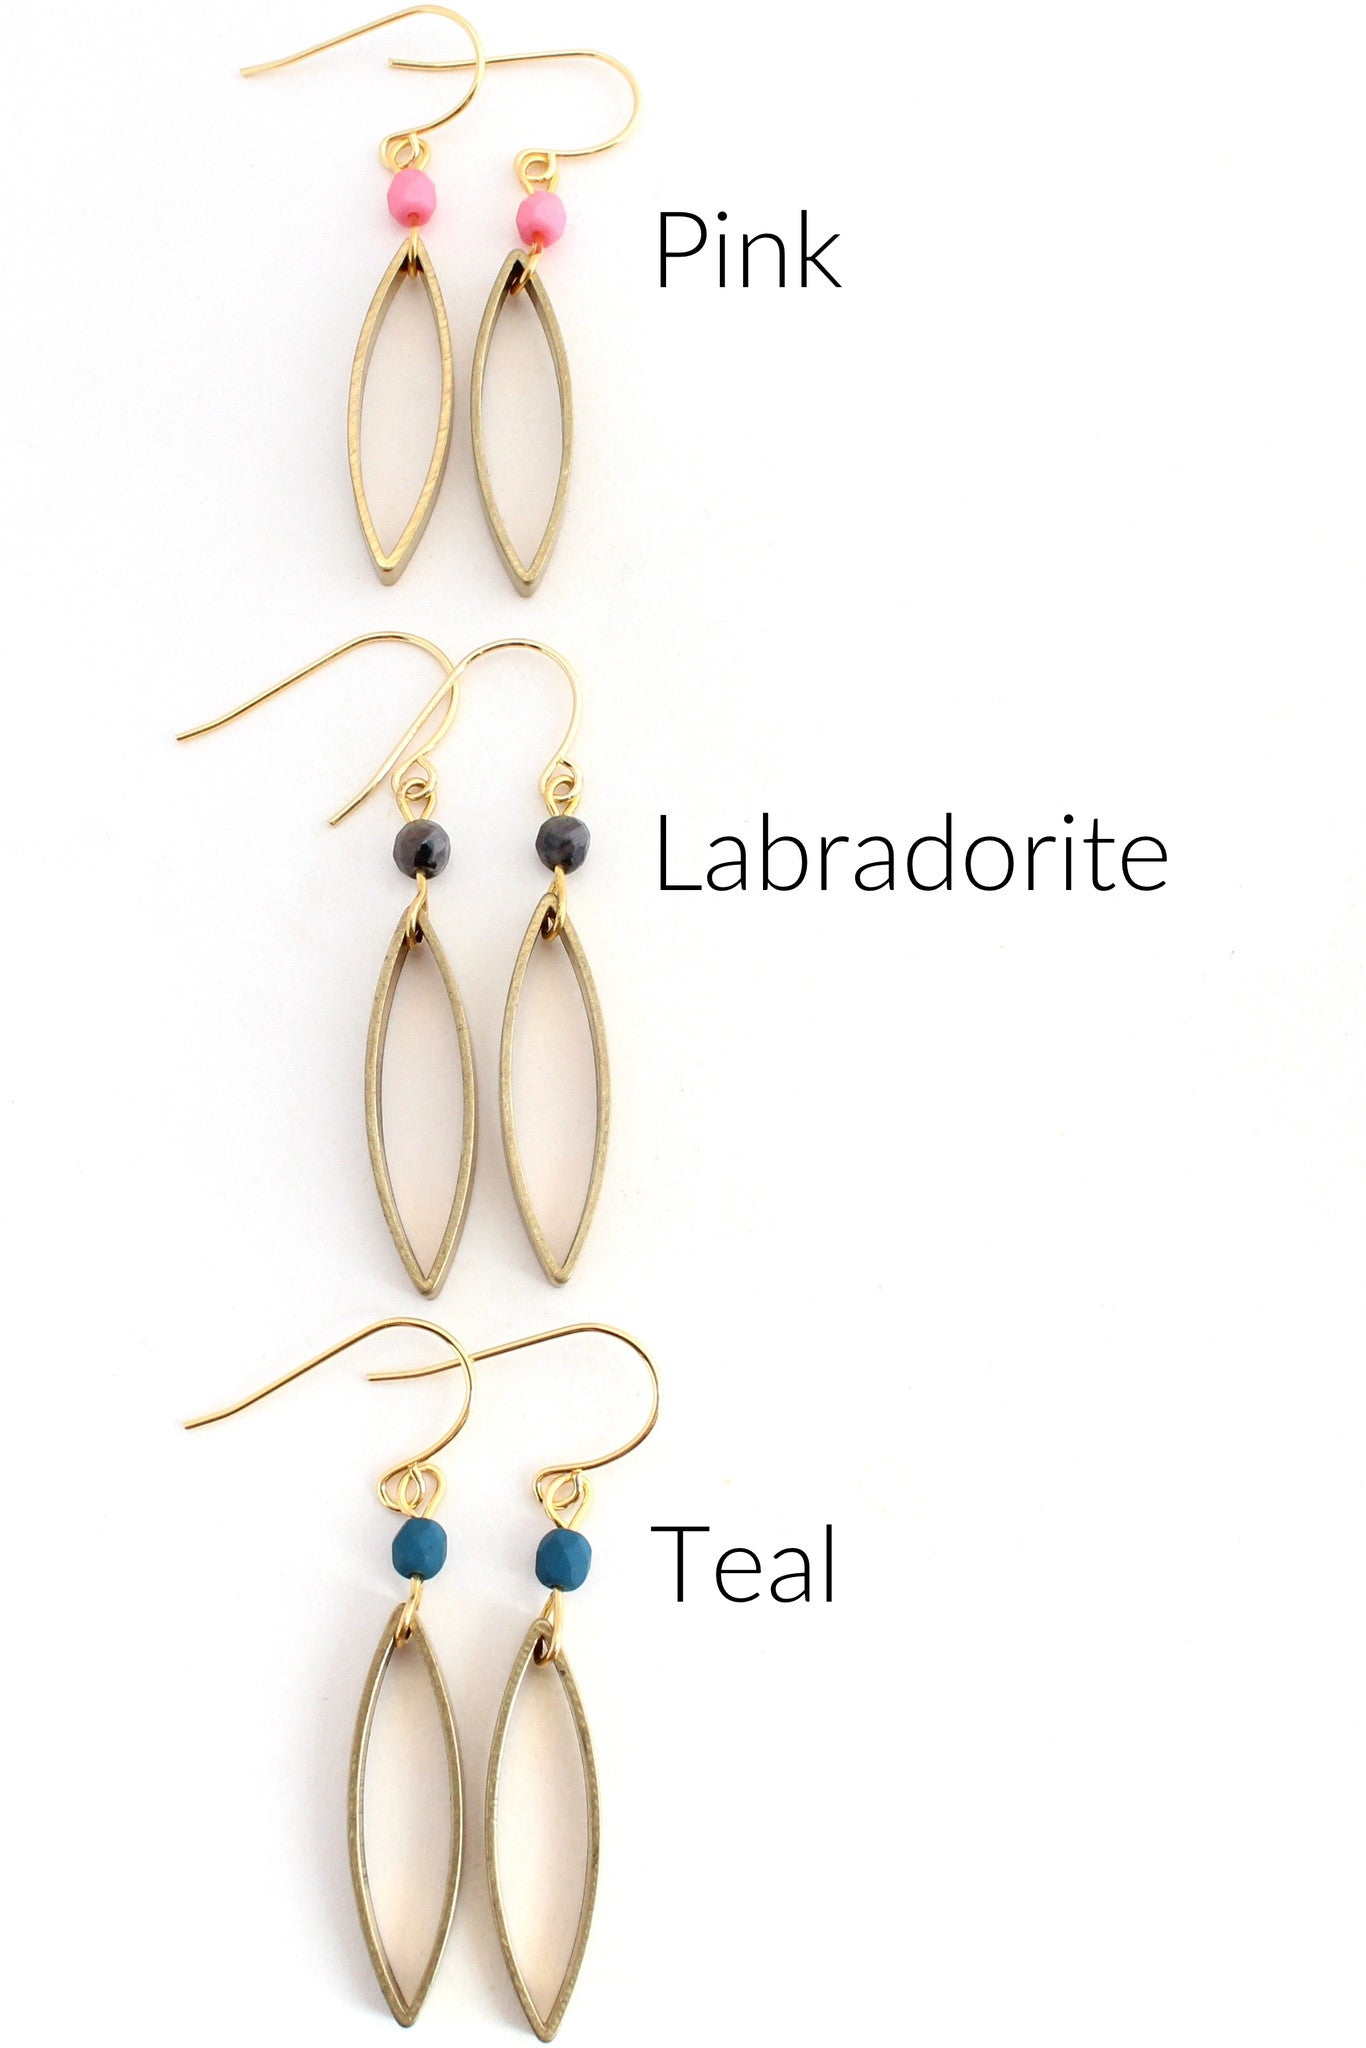 Paolo -- ellipse and gem earrings